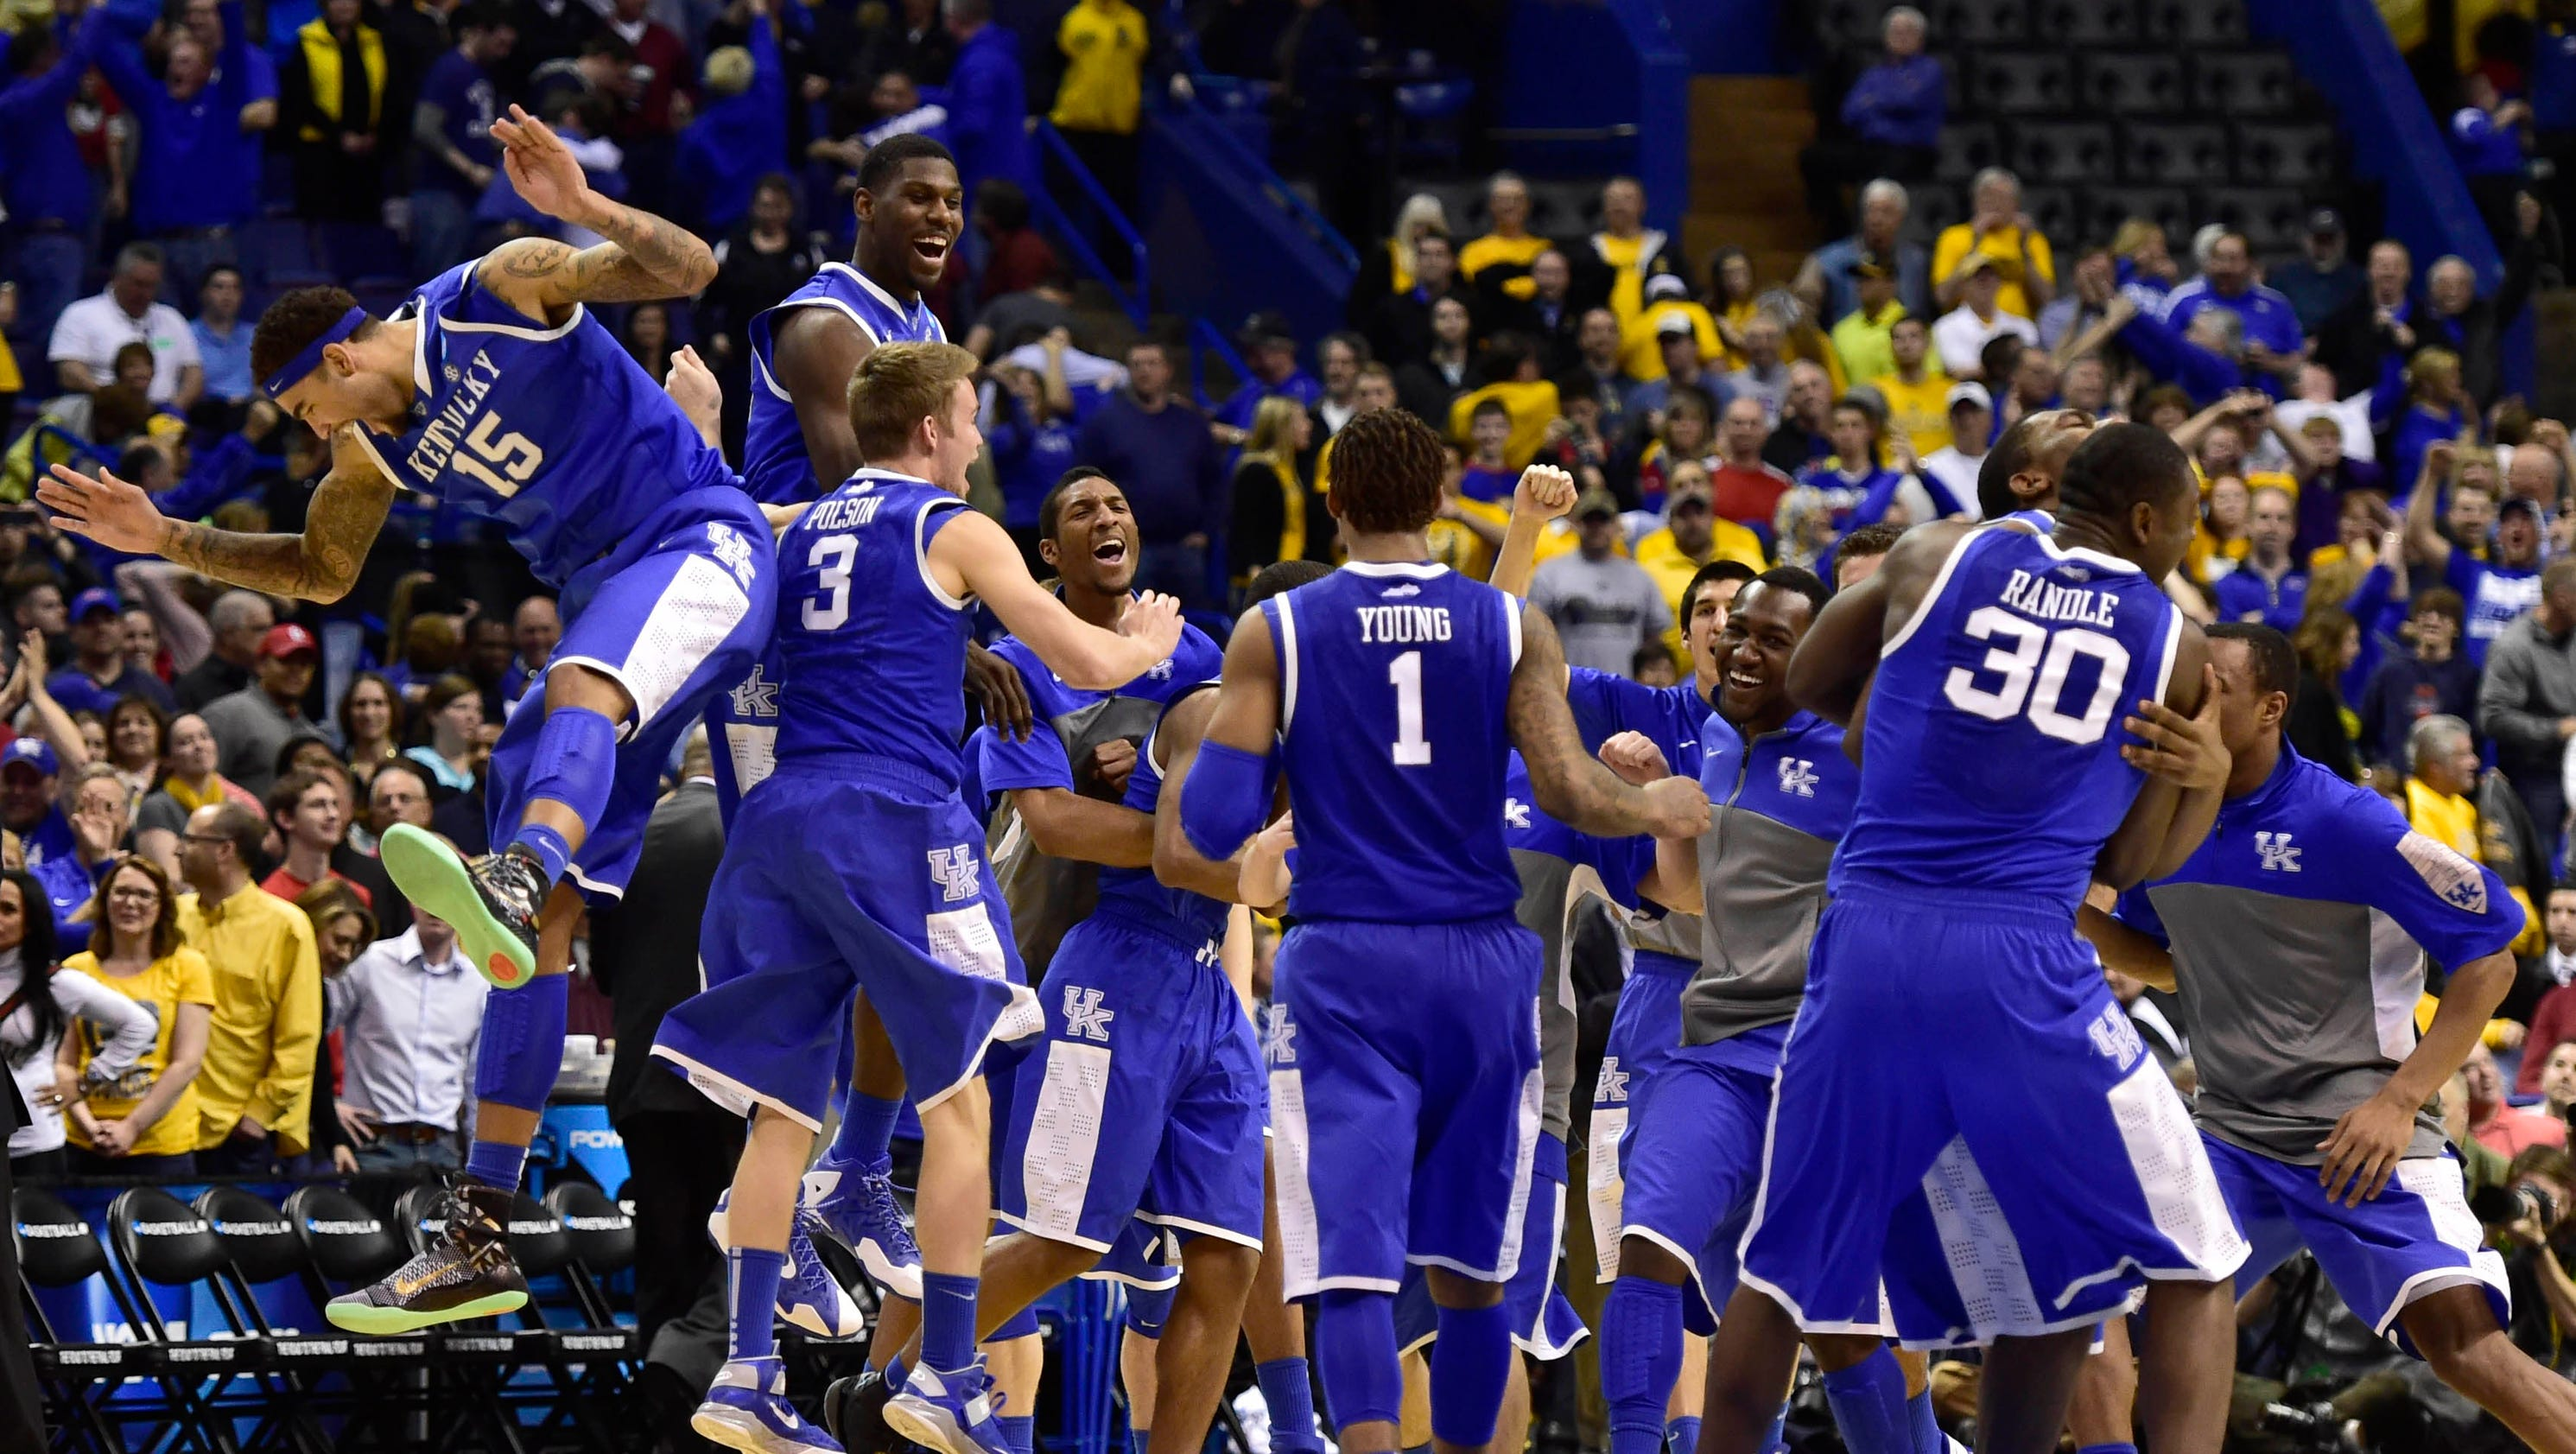 Sandy Baron Wallpapers Kentucky ends Wichita State s unbeaten run advances to Sweet